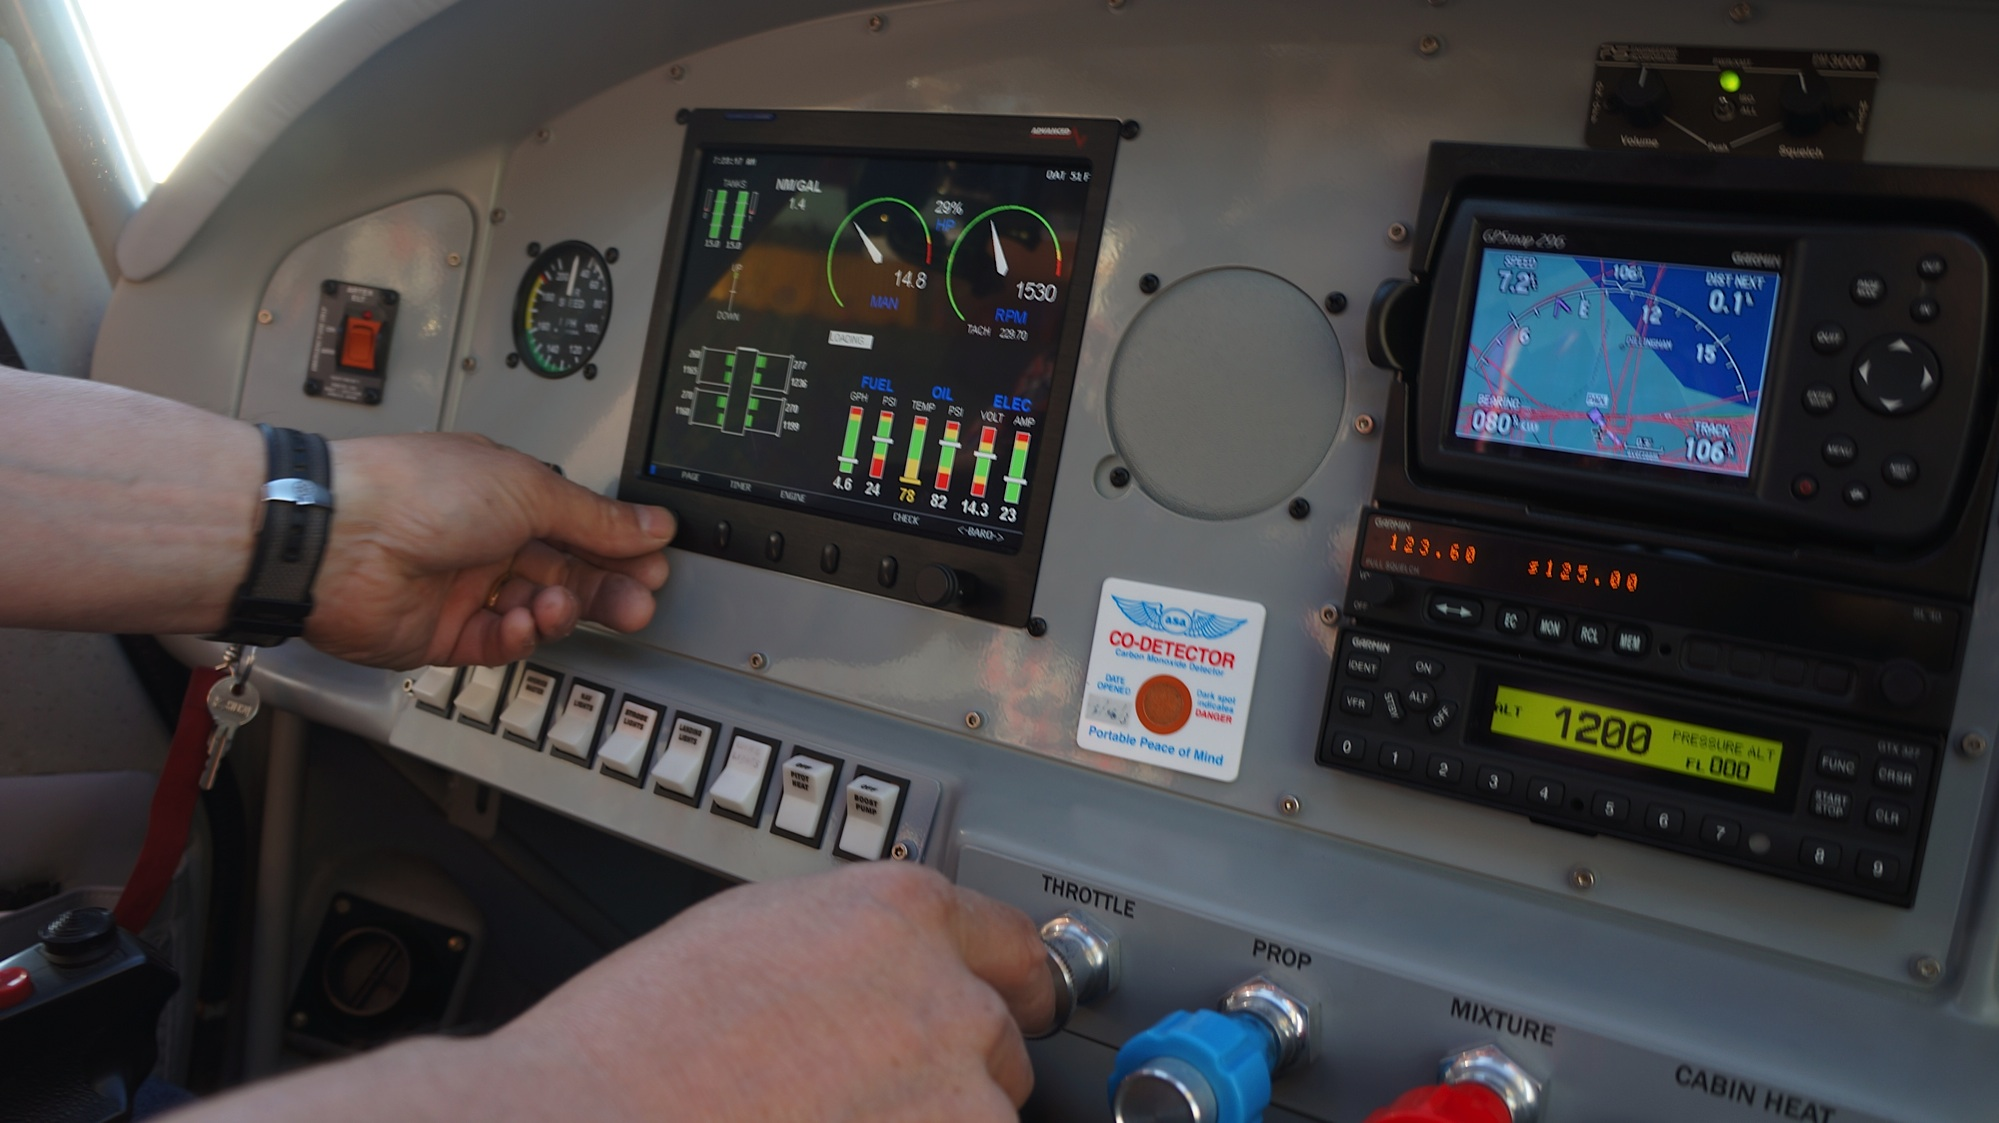 Control panel in the plane's dash, turn the key, flip some switches, adjust some knobs...